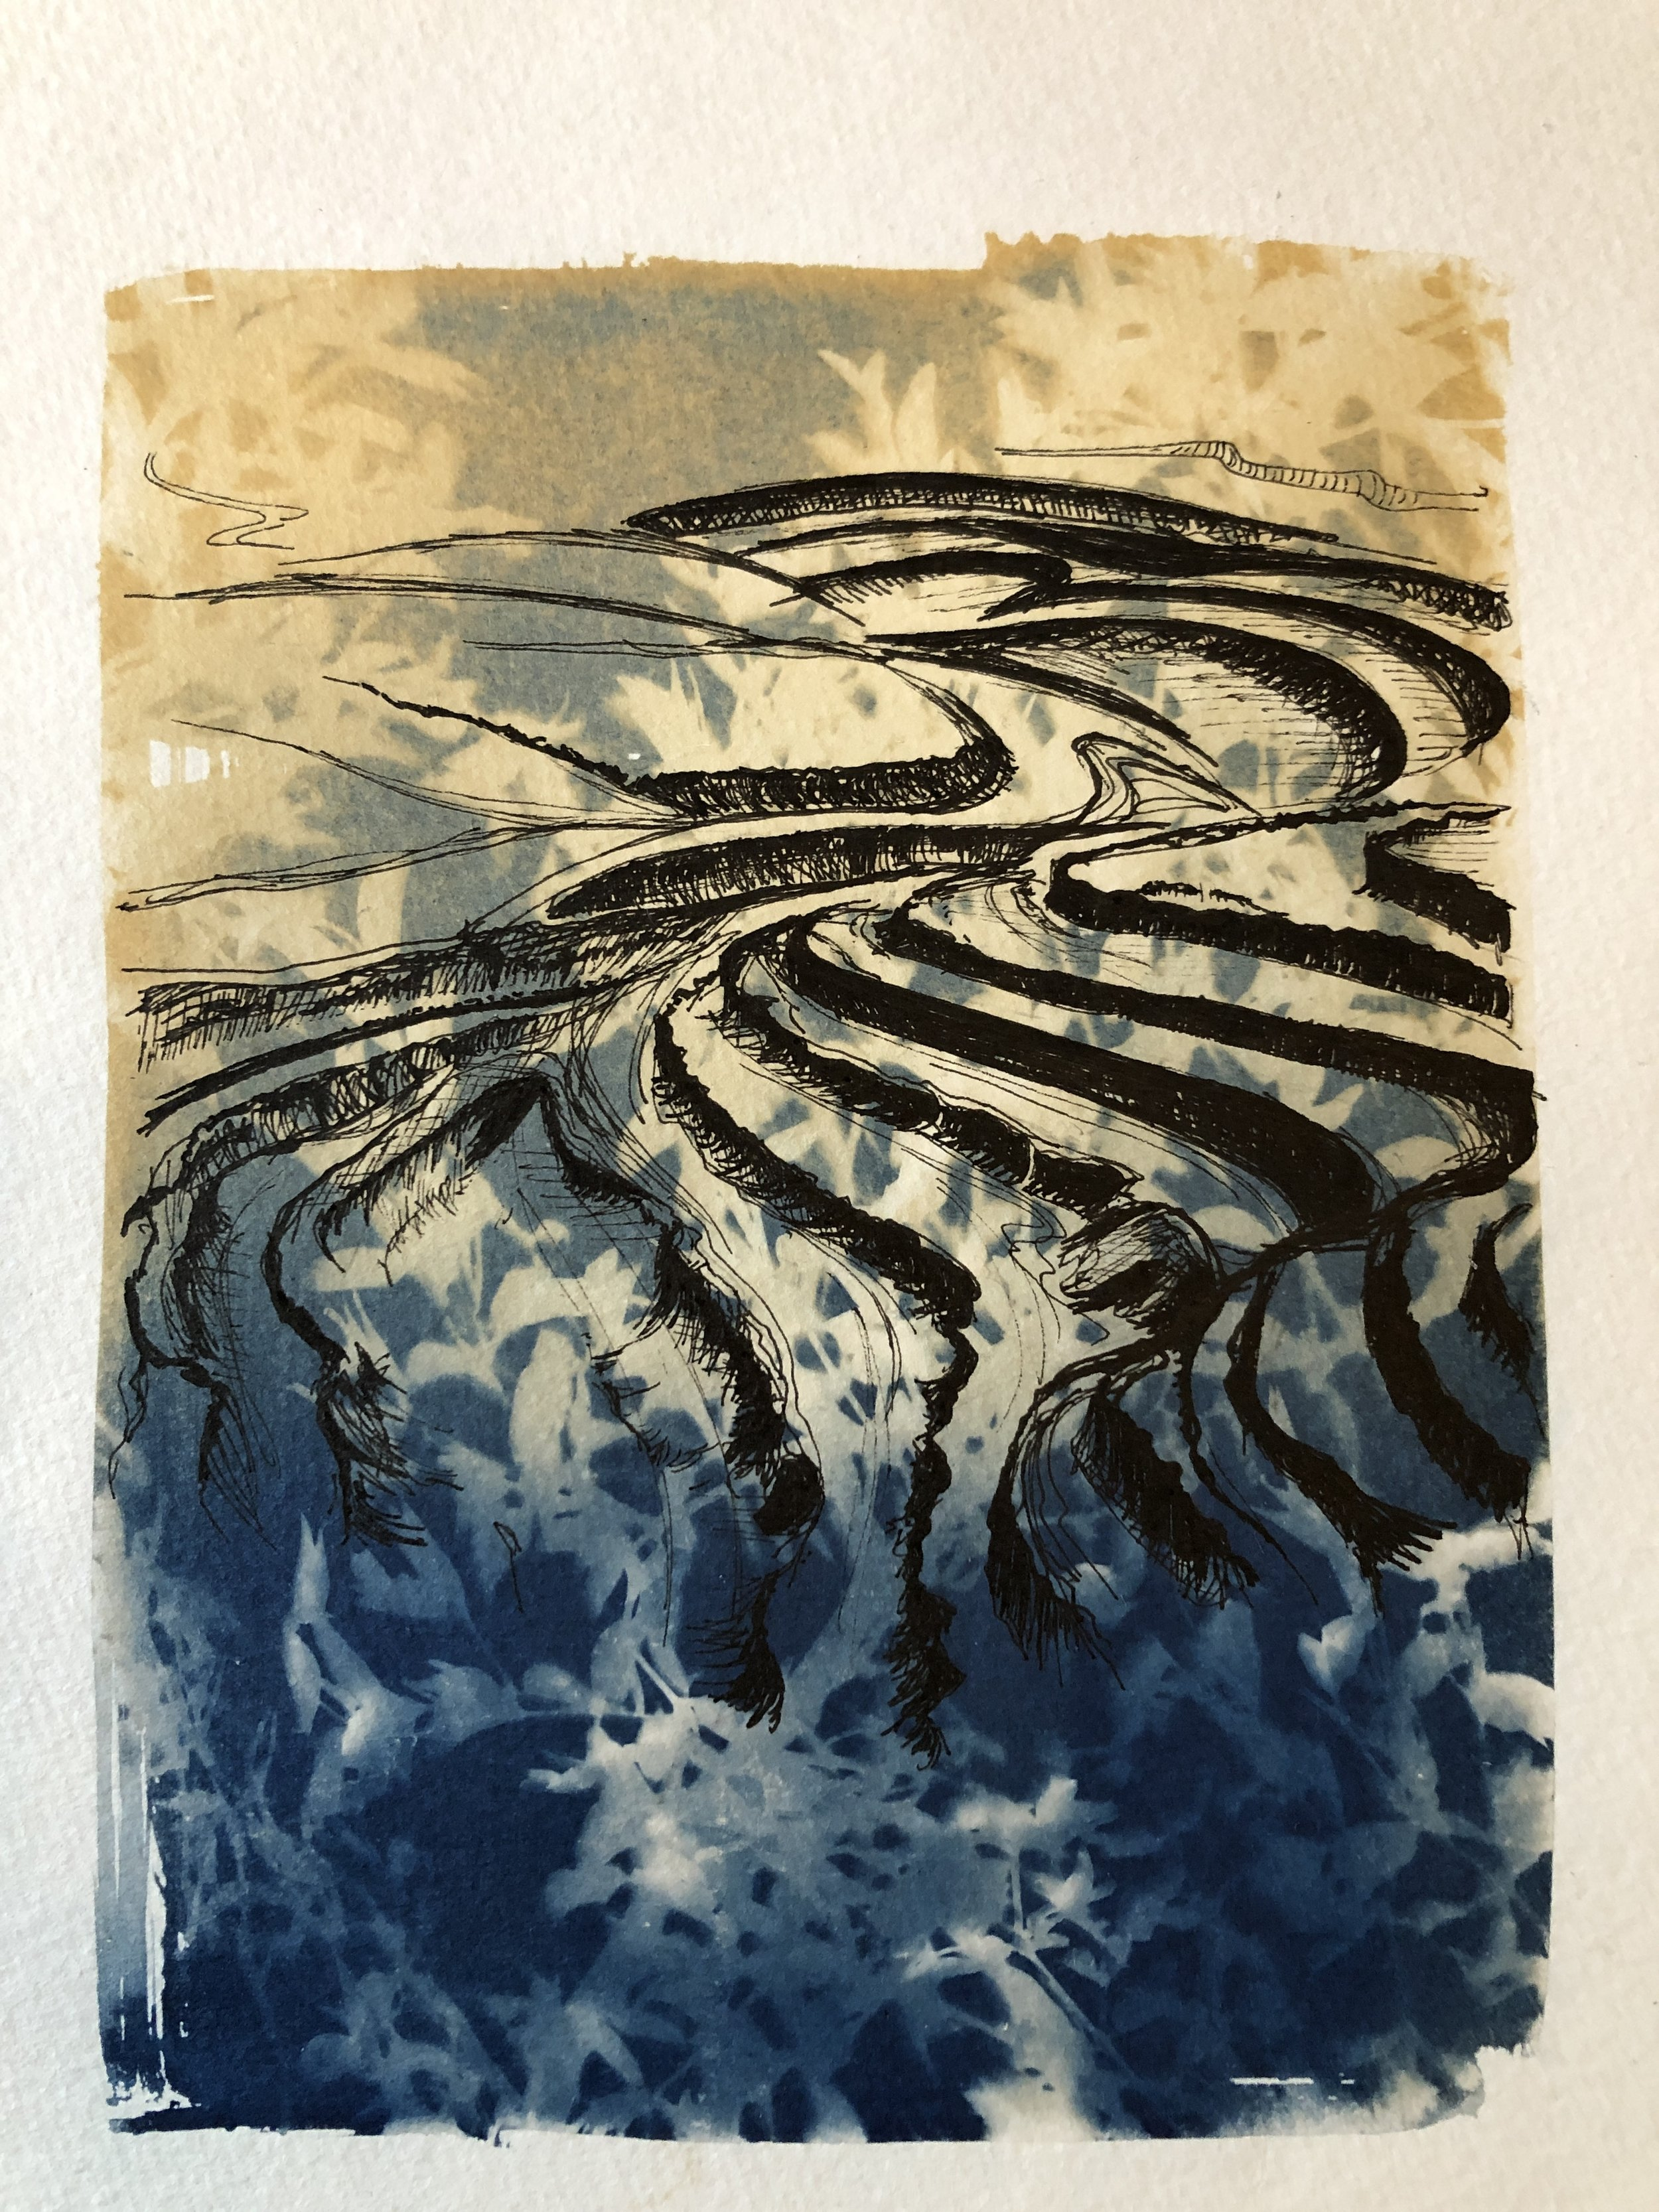 Marie Craig,  Entanglement 6 (strip mine),  pen and ink on toned cyanotype photograph, 6 x 8 inches.